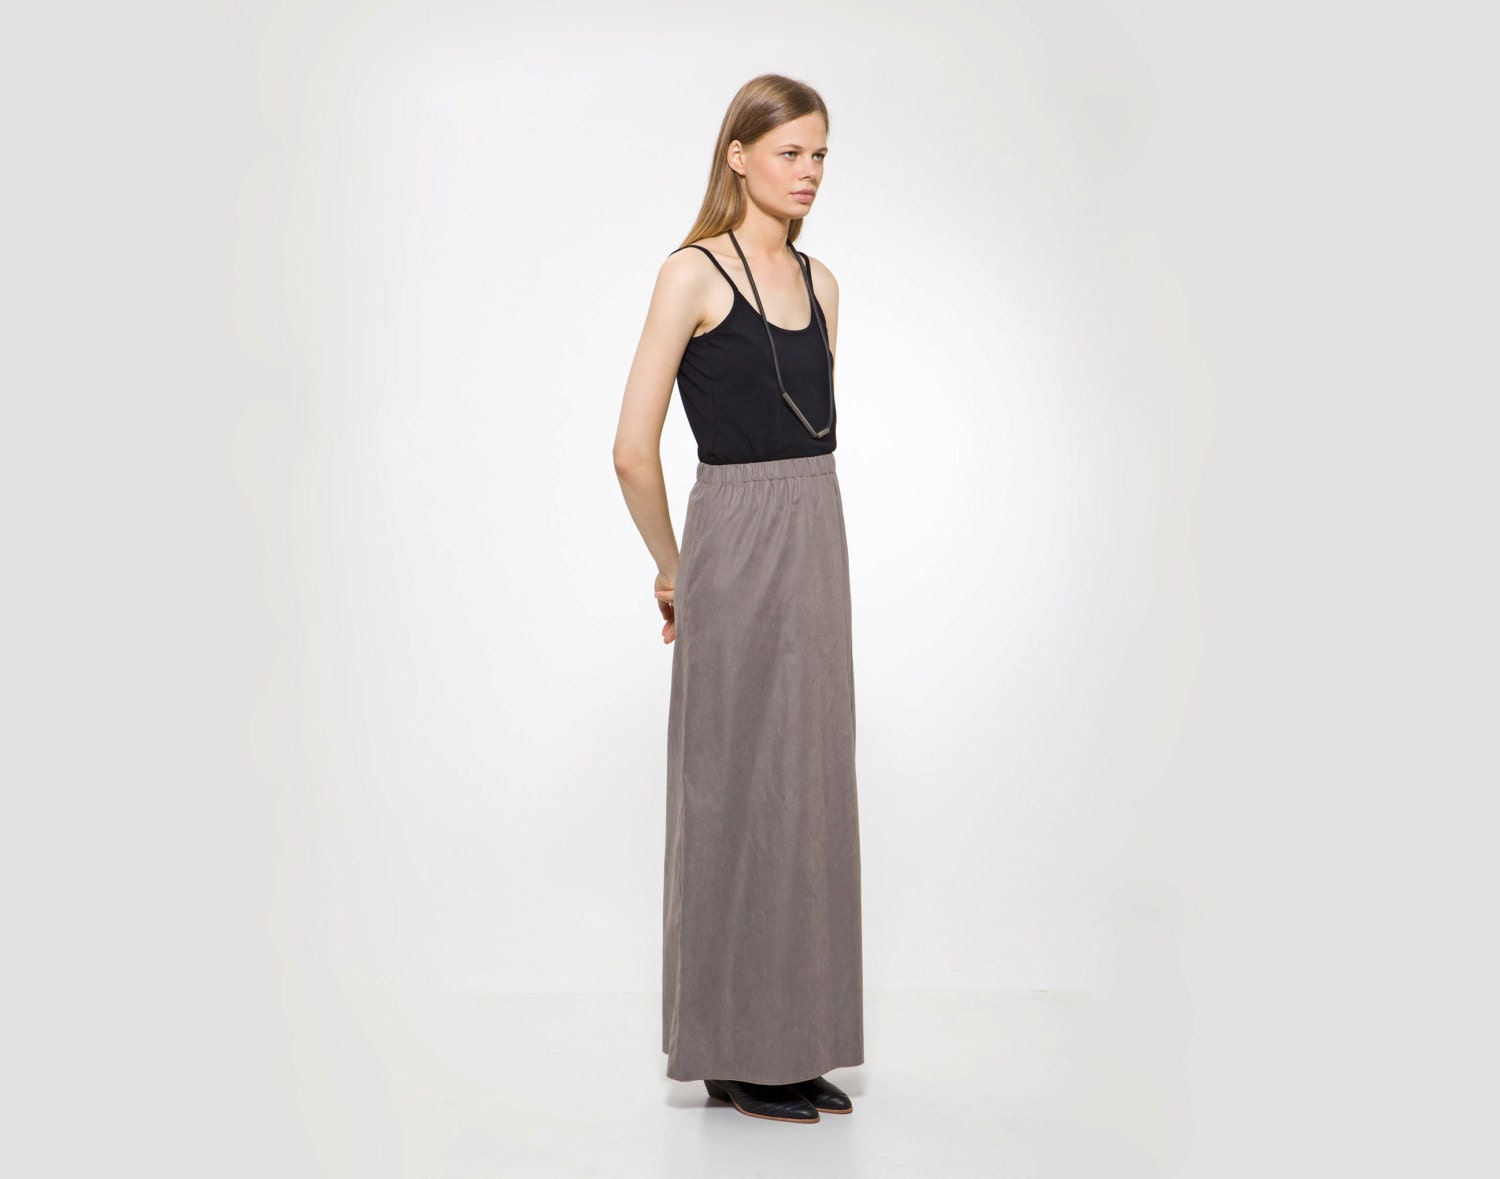 Nov 22, · This past summer, I practically lived in maxi skirt. I paired them with crop tops, t-shirts, loose tank tops, and even sometimes used them as a bathing suit cover-up. I paired them with crop tops, t-shirts, loose tank tops, and even sometimes used them as a bathing suit cover-up.